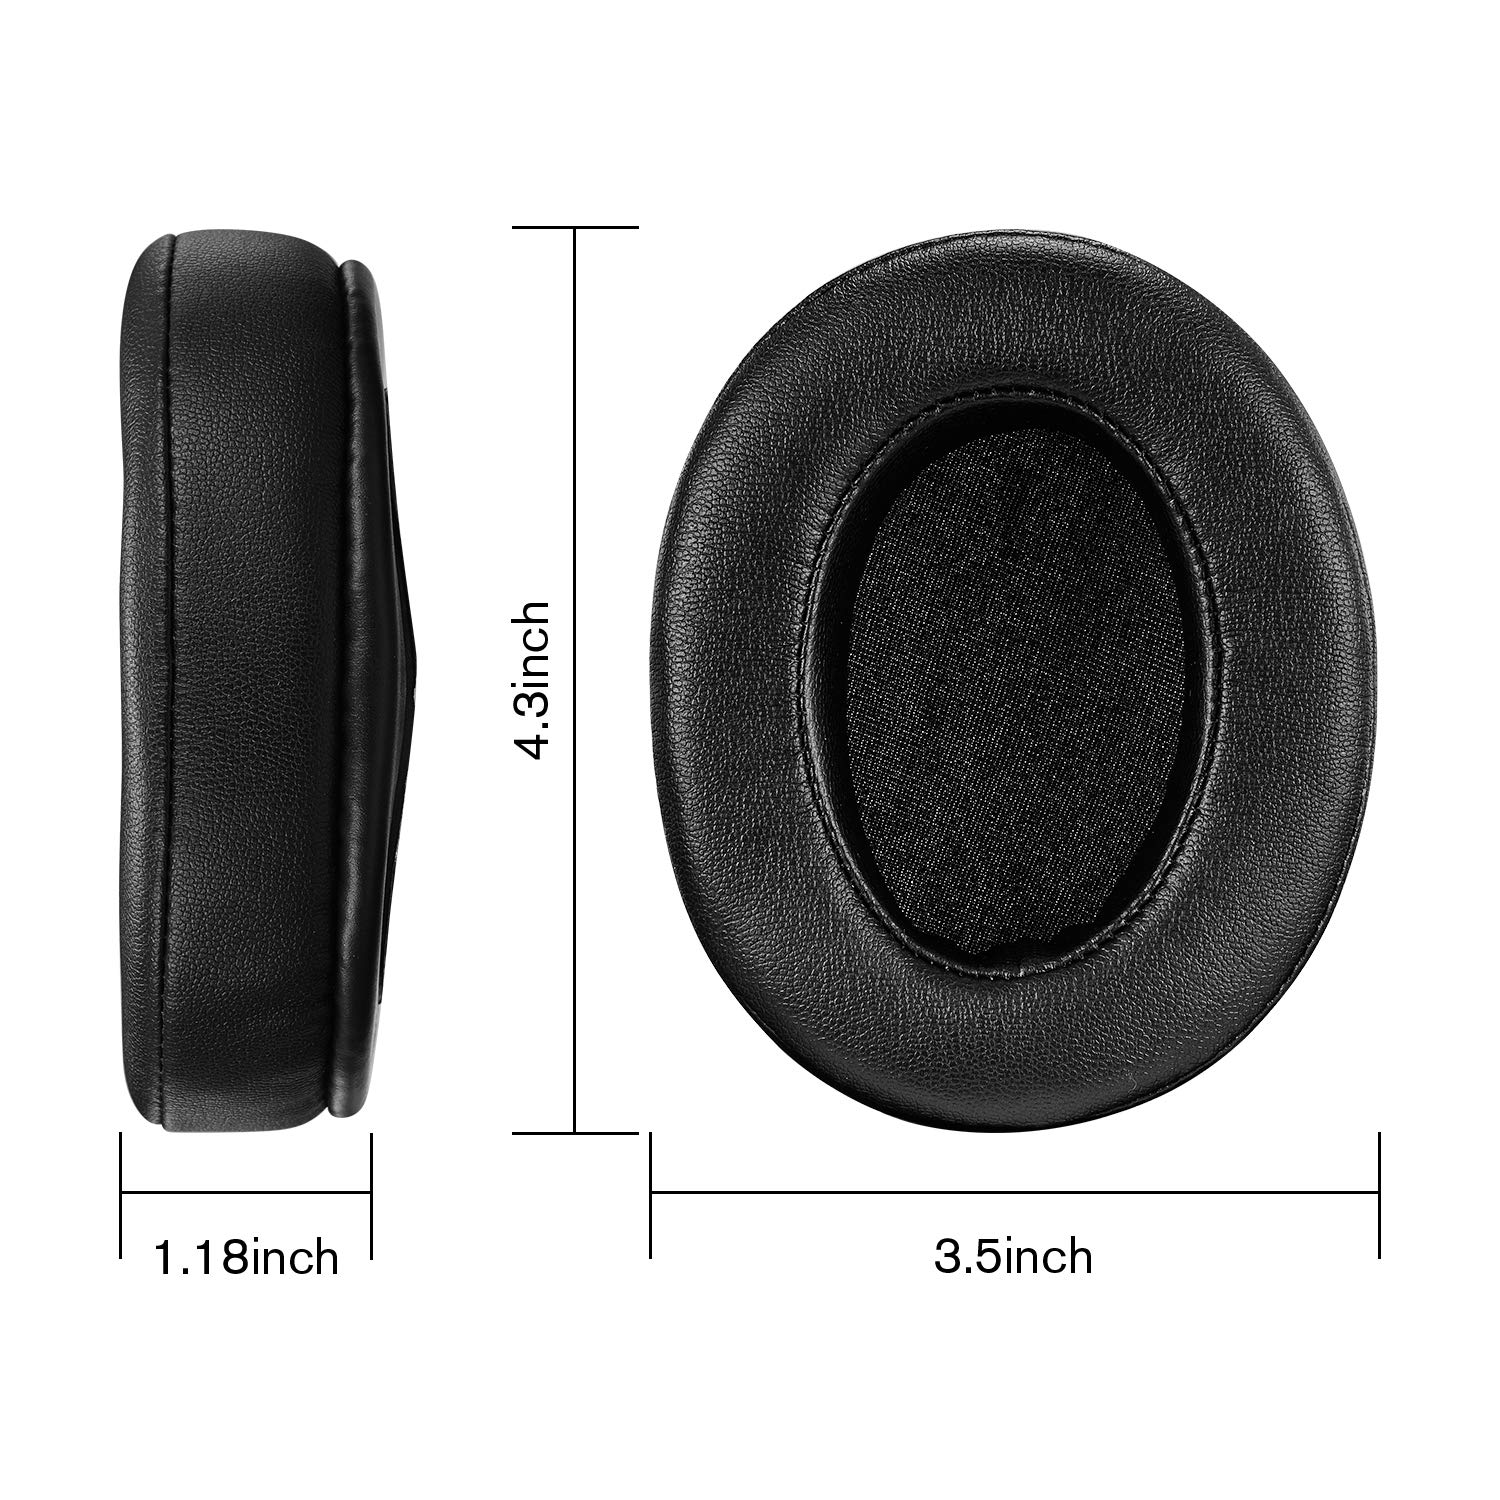 Ear Pads Ear Cushion Replacement for Audio Technica ATH M50X M50 M40X M40 Turtle Beach HyperX Sennheiser and More in Earphone Accessories from Consumer Electronics